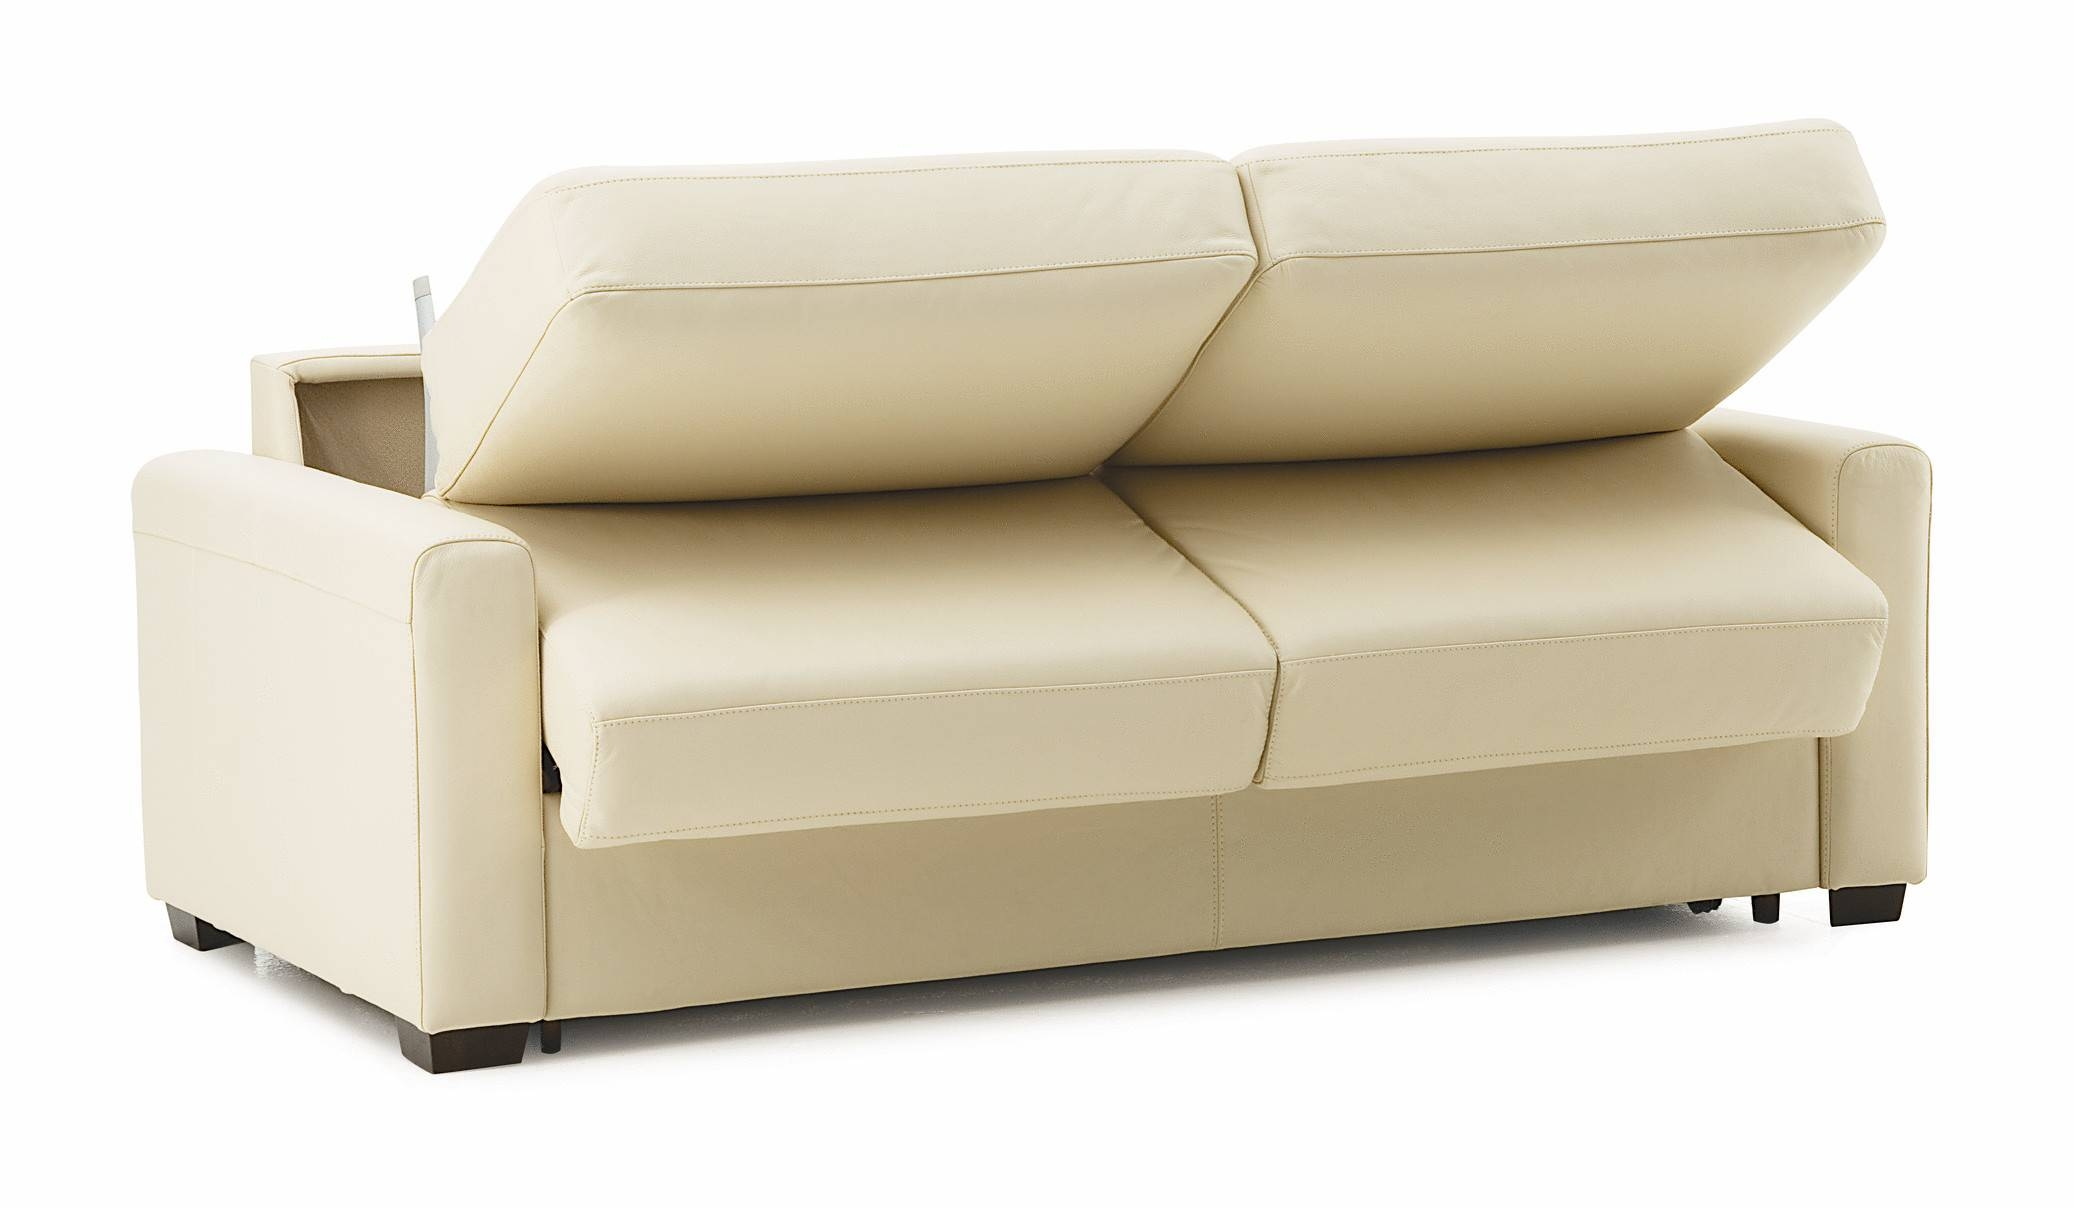 Comfortable Sofa Sleeper And Comfortable Sofa Bed › Most Inside Sofa Bed Sleepers (View 3 of 30)